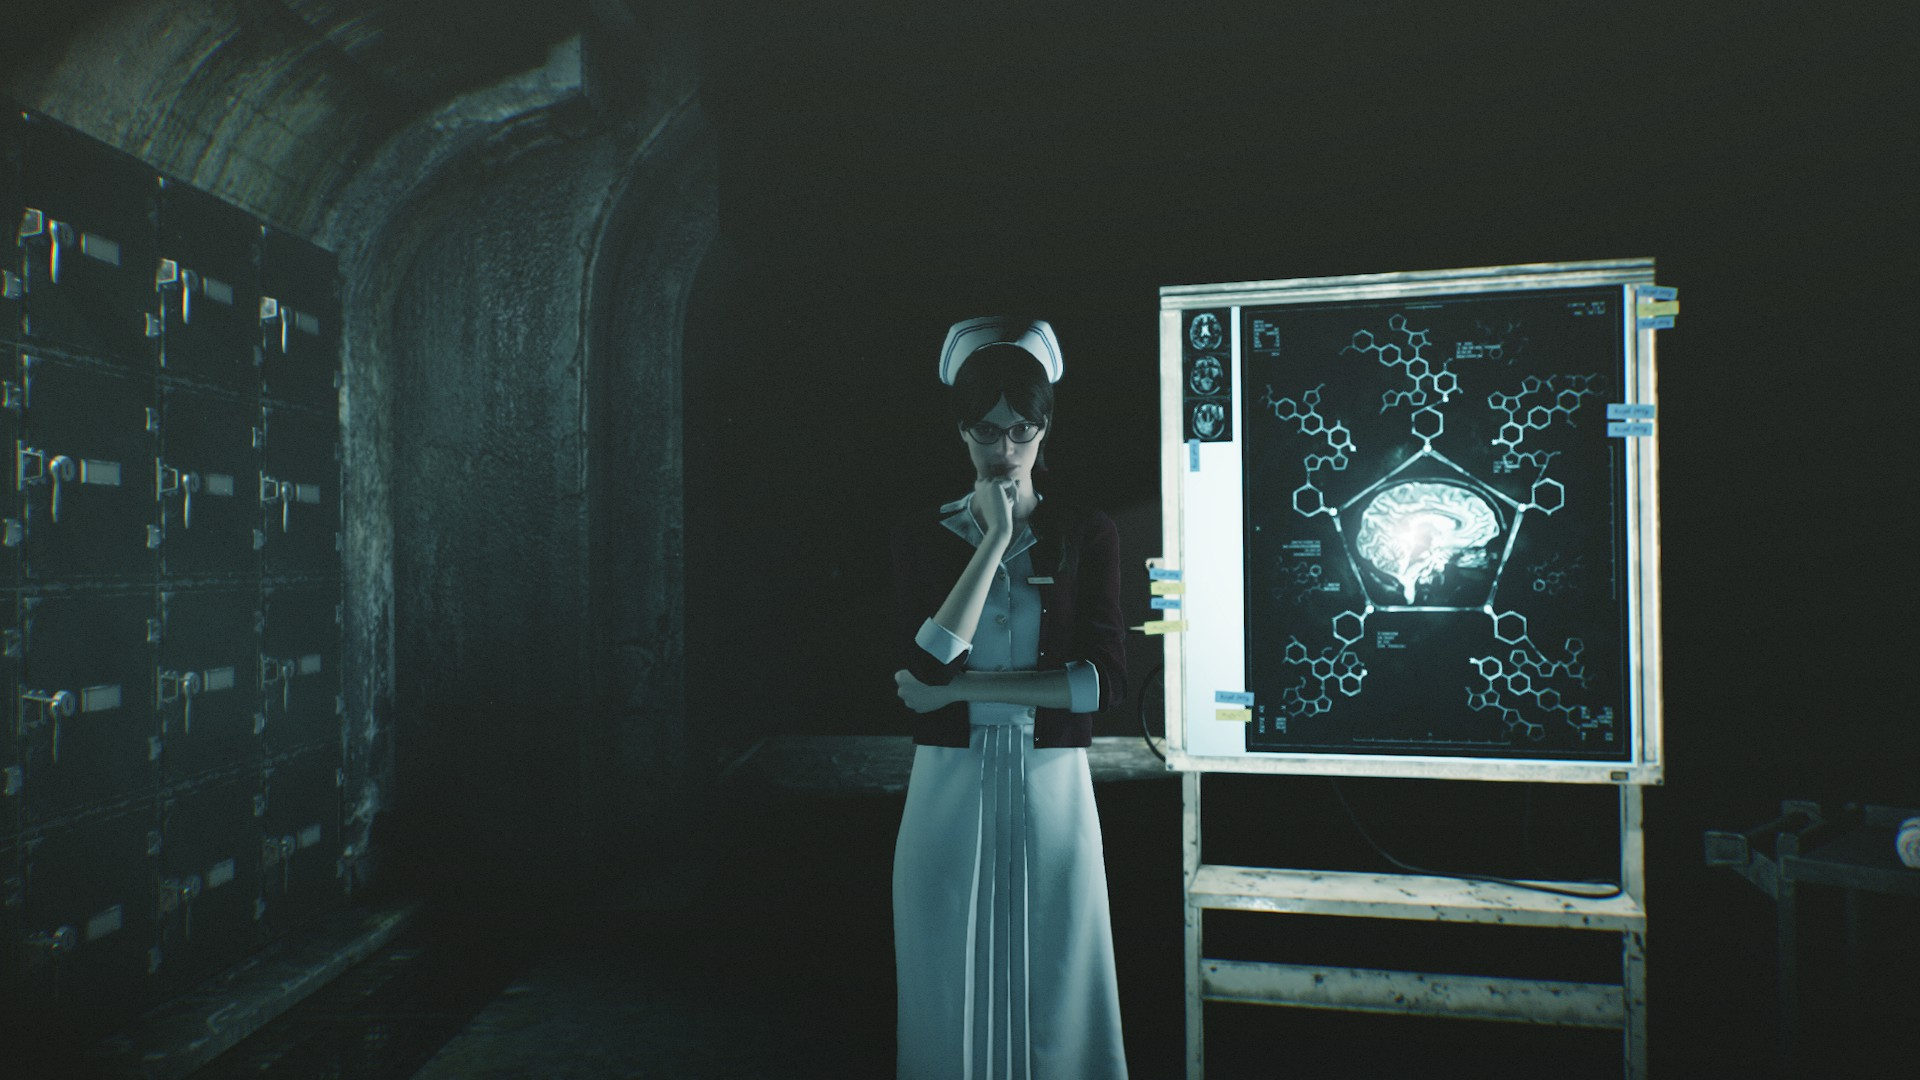 20181120145636_1.jpg - Evil Within 2, the